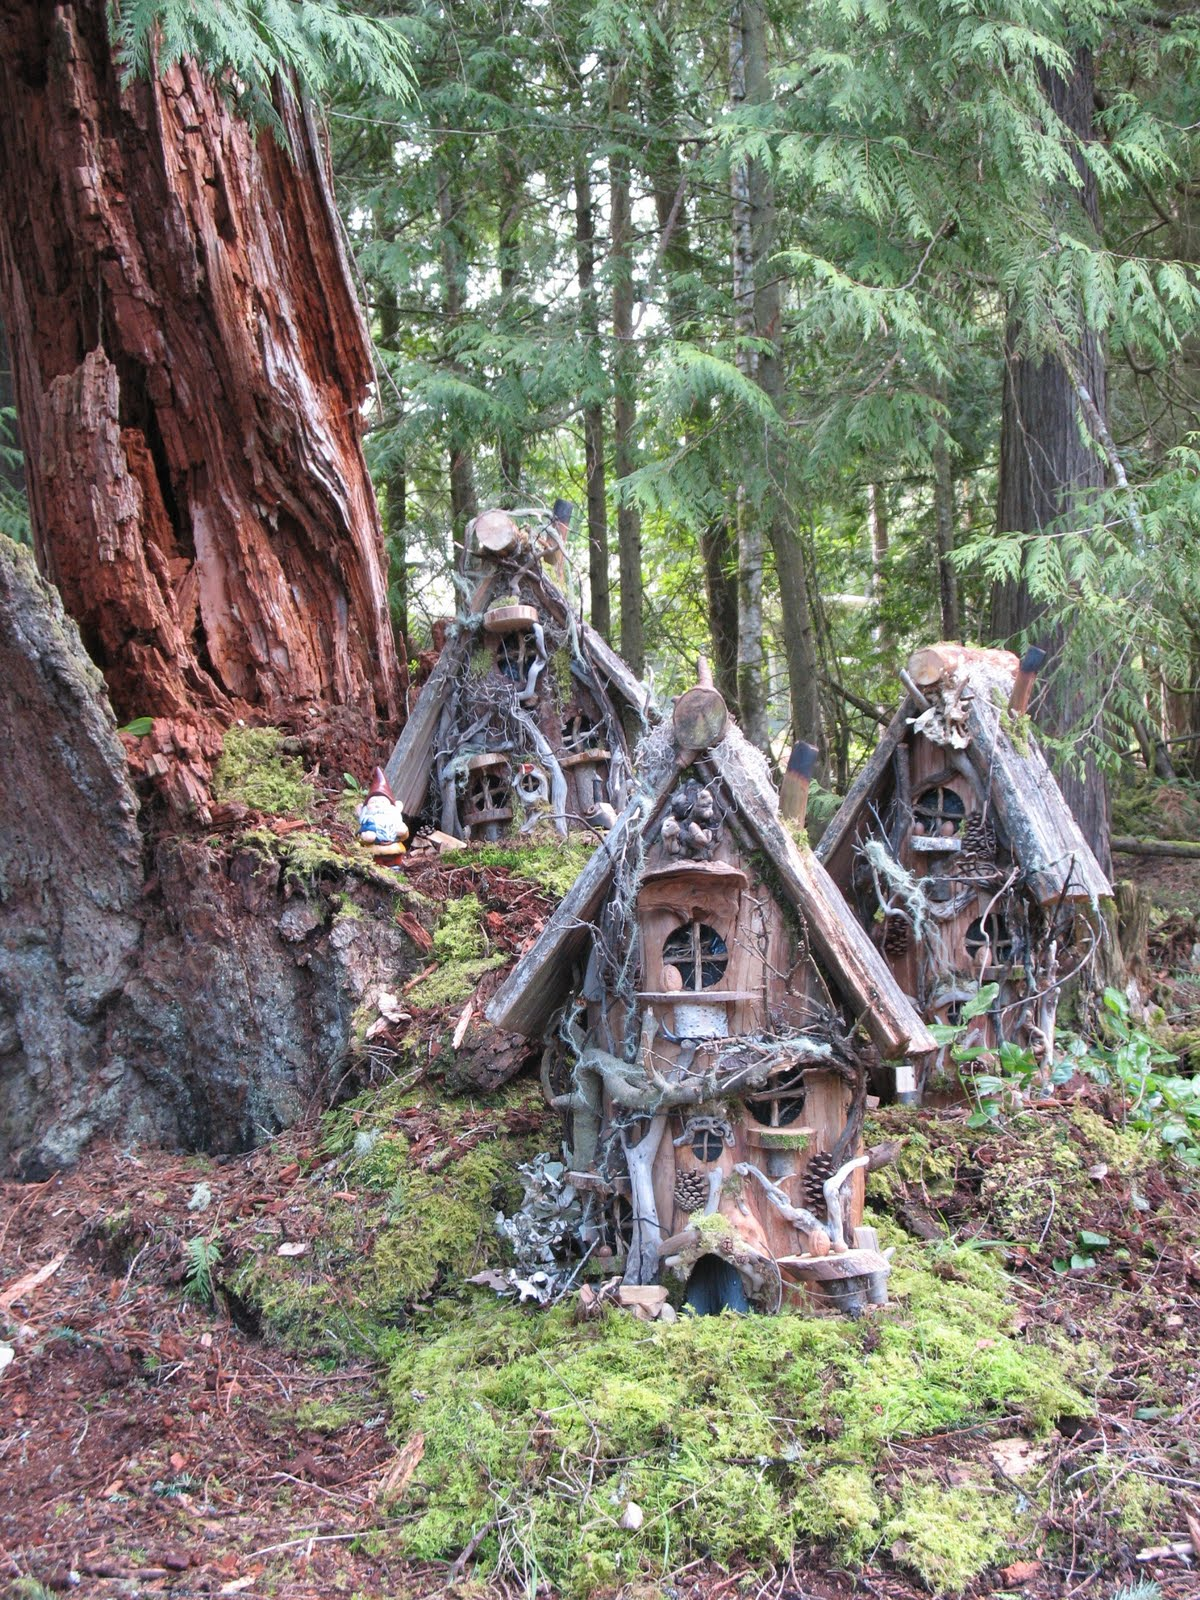 Gnome stories at whimsical woods gnome homes on a big old cedar stump